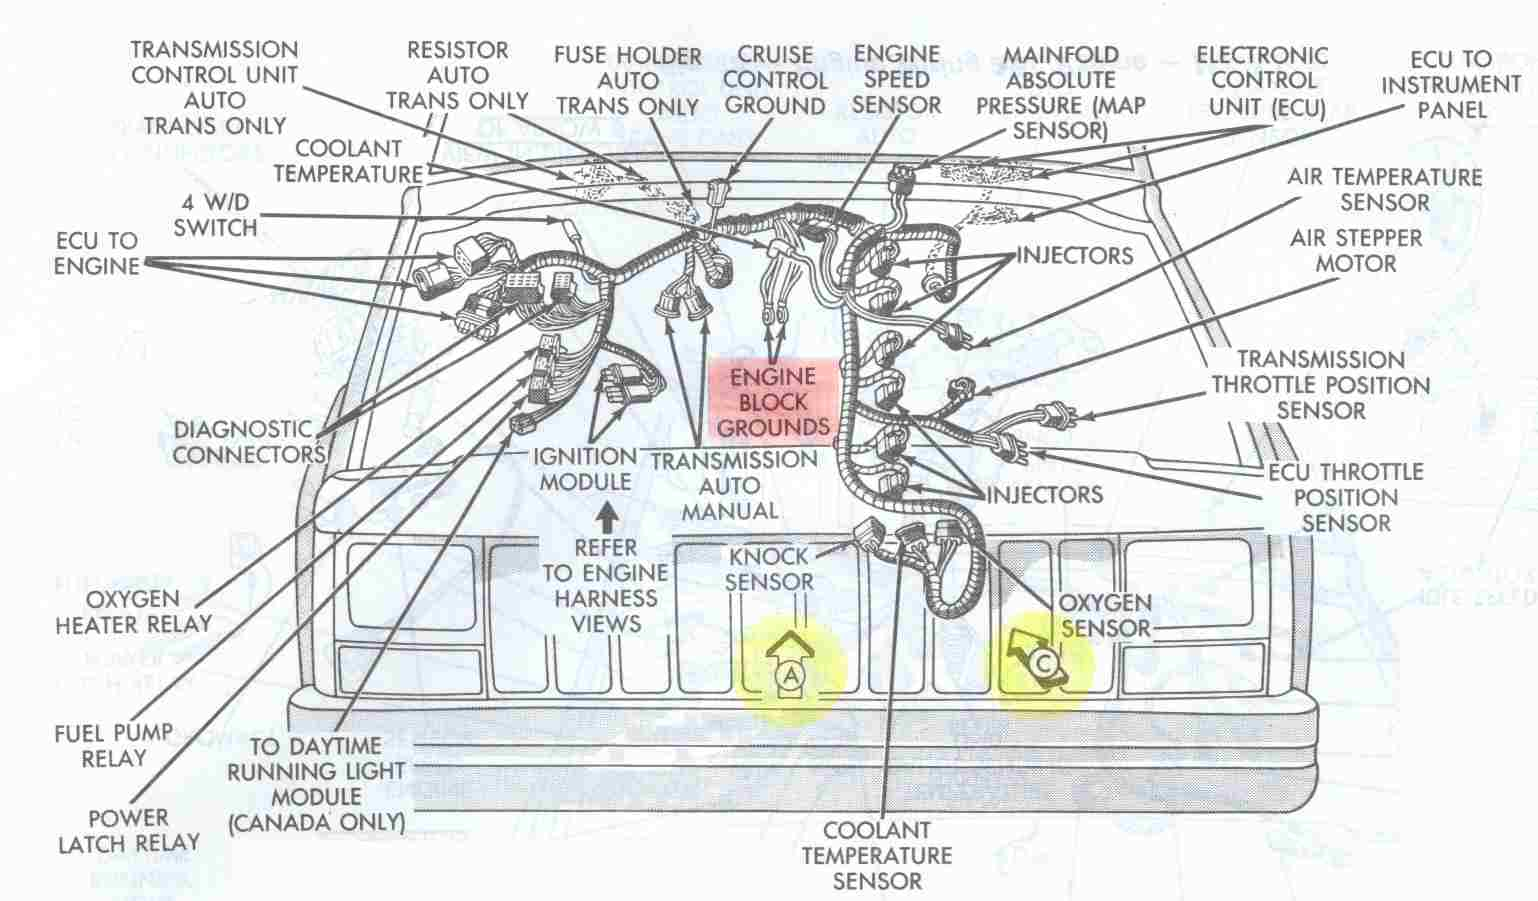 Electrical_Engine_Ground_Points_Overview jeep cherokee electrical diagnosing erratic behavior of engine 2000 jeep cherokee wiring diagram at soozxer.org